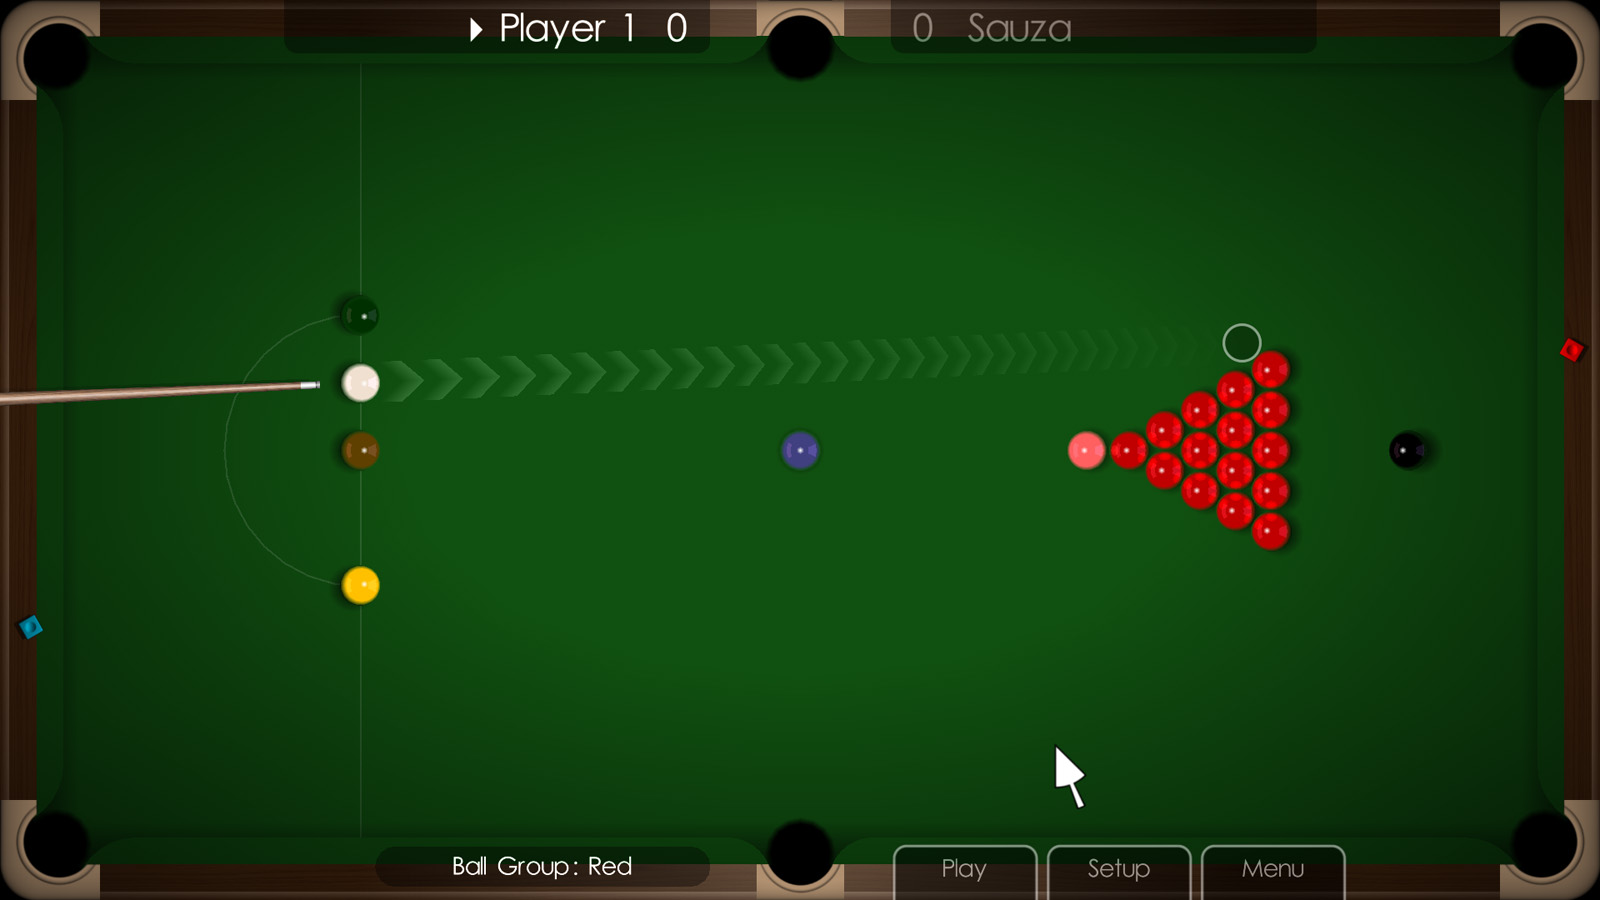 Free download cue club snooker game for pc full version – ttitarob1997.